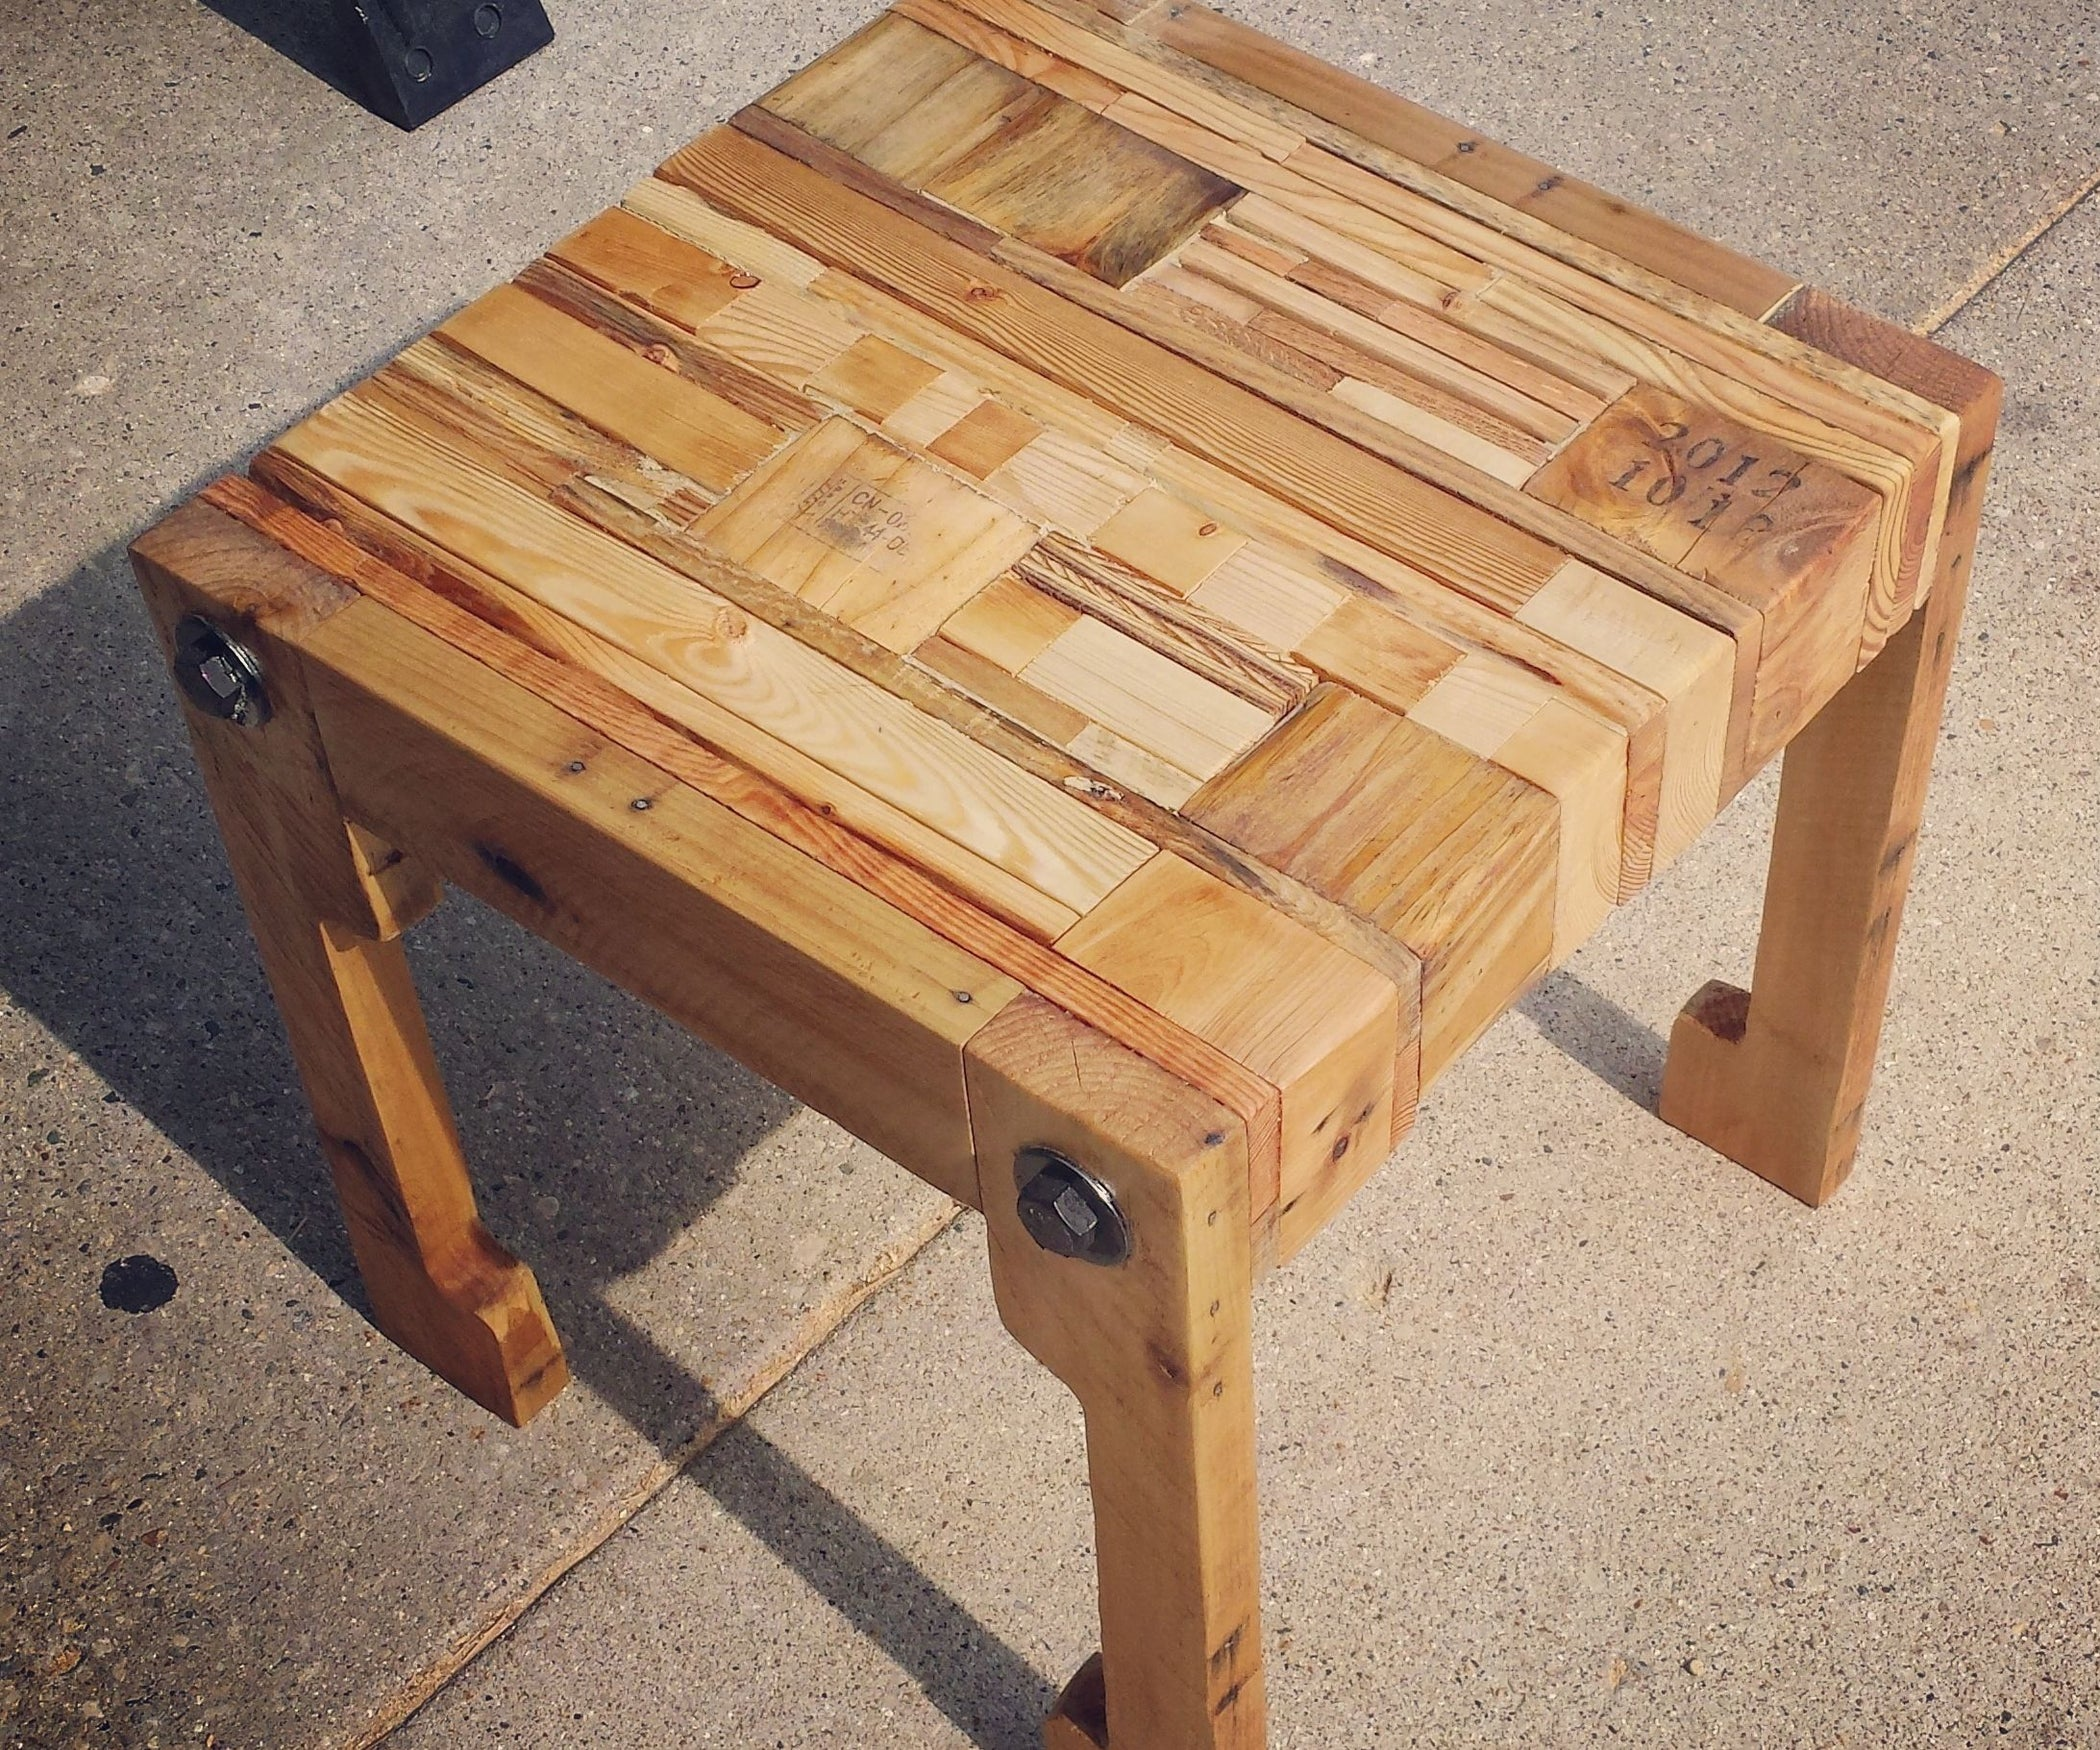 Pallet Wood Table/Seat And Upcycled Pillow: 6 Steps (with